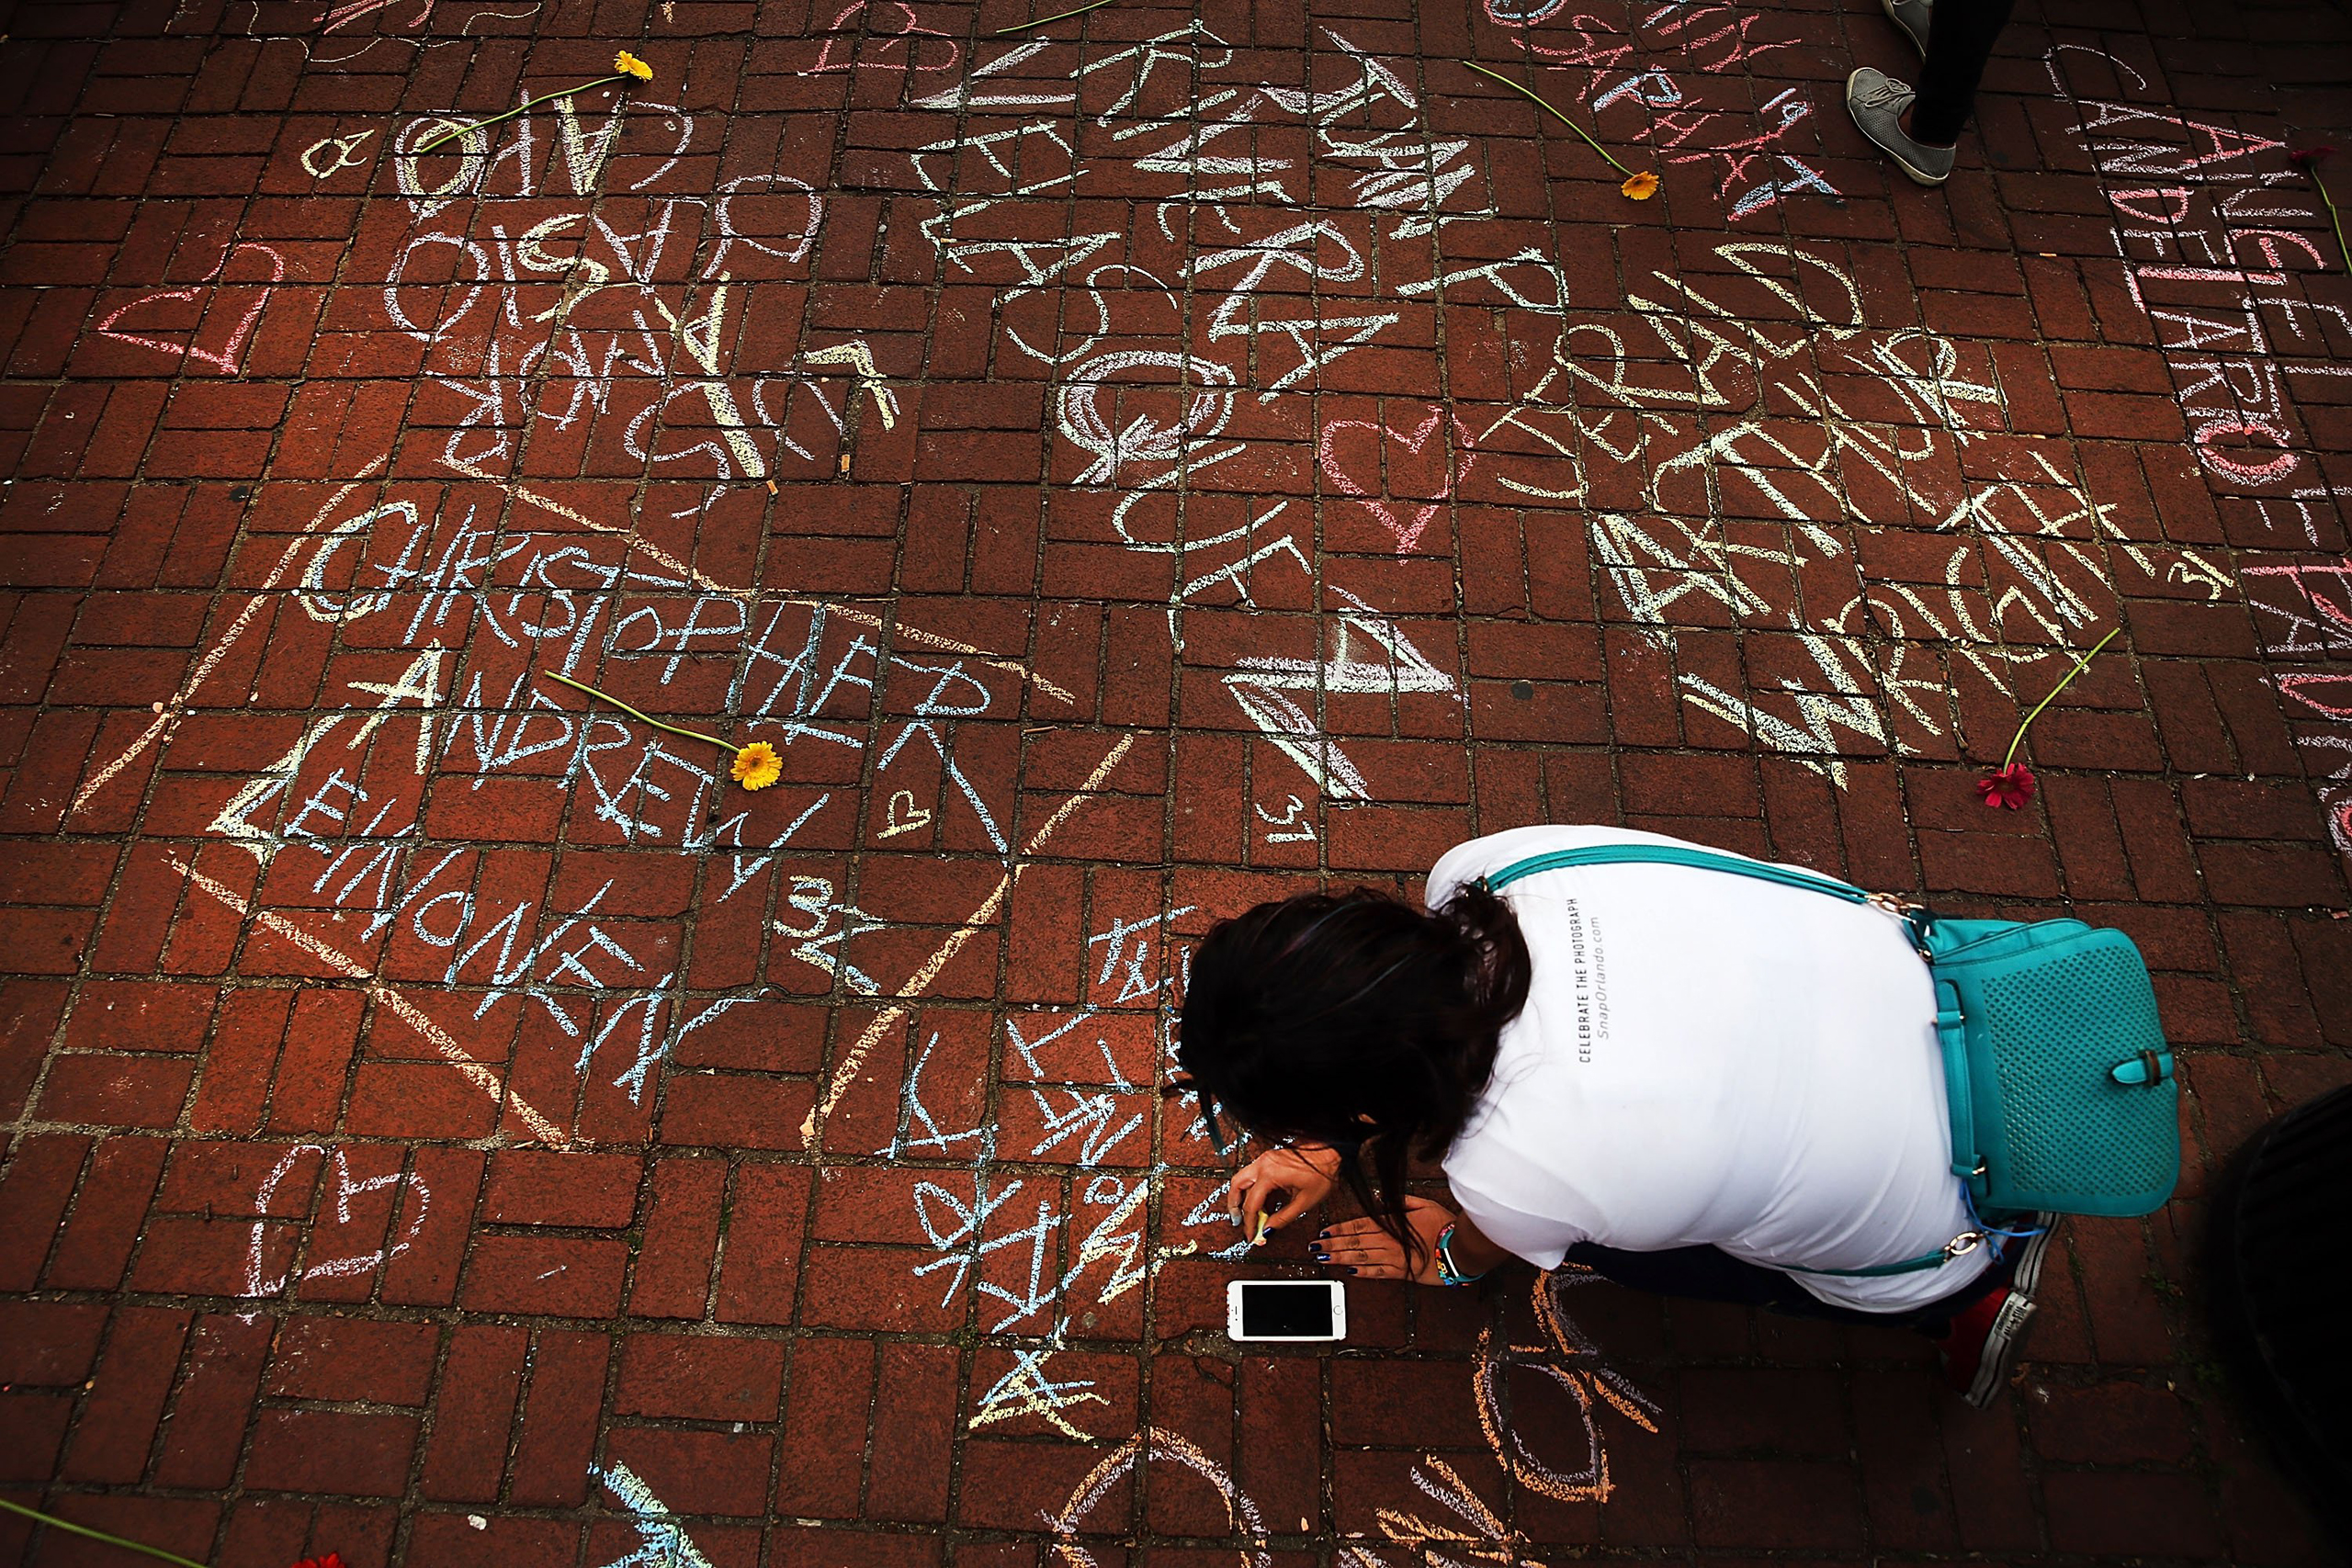 A woman joins others in writing the names of shooting victims in chalk in a park across from the iconic New York City gay and lesbian bar The Stonewall Inn on June 13, 2016.